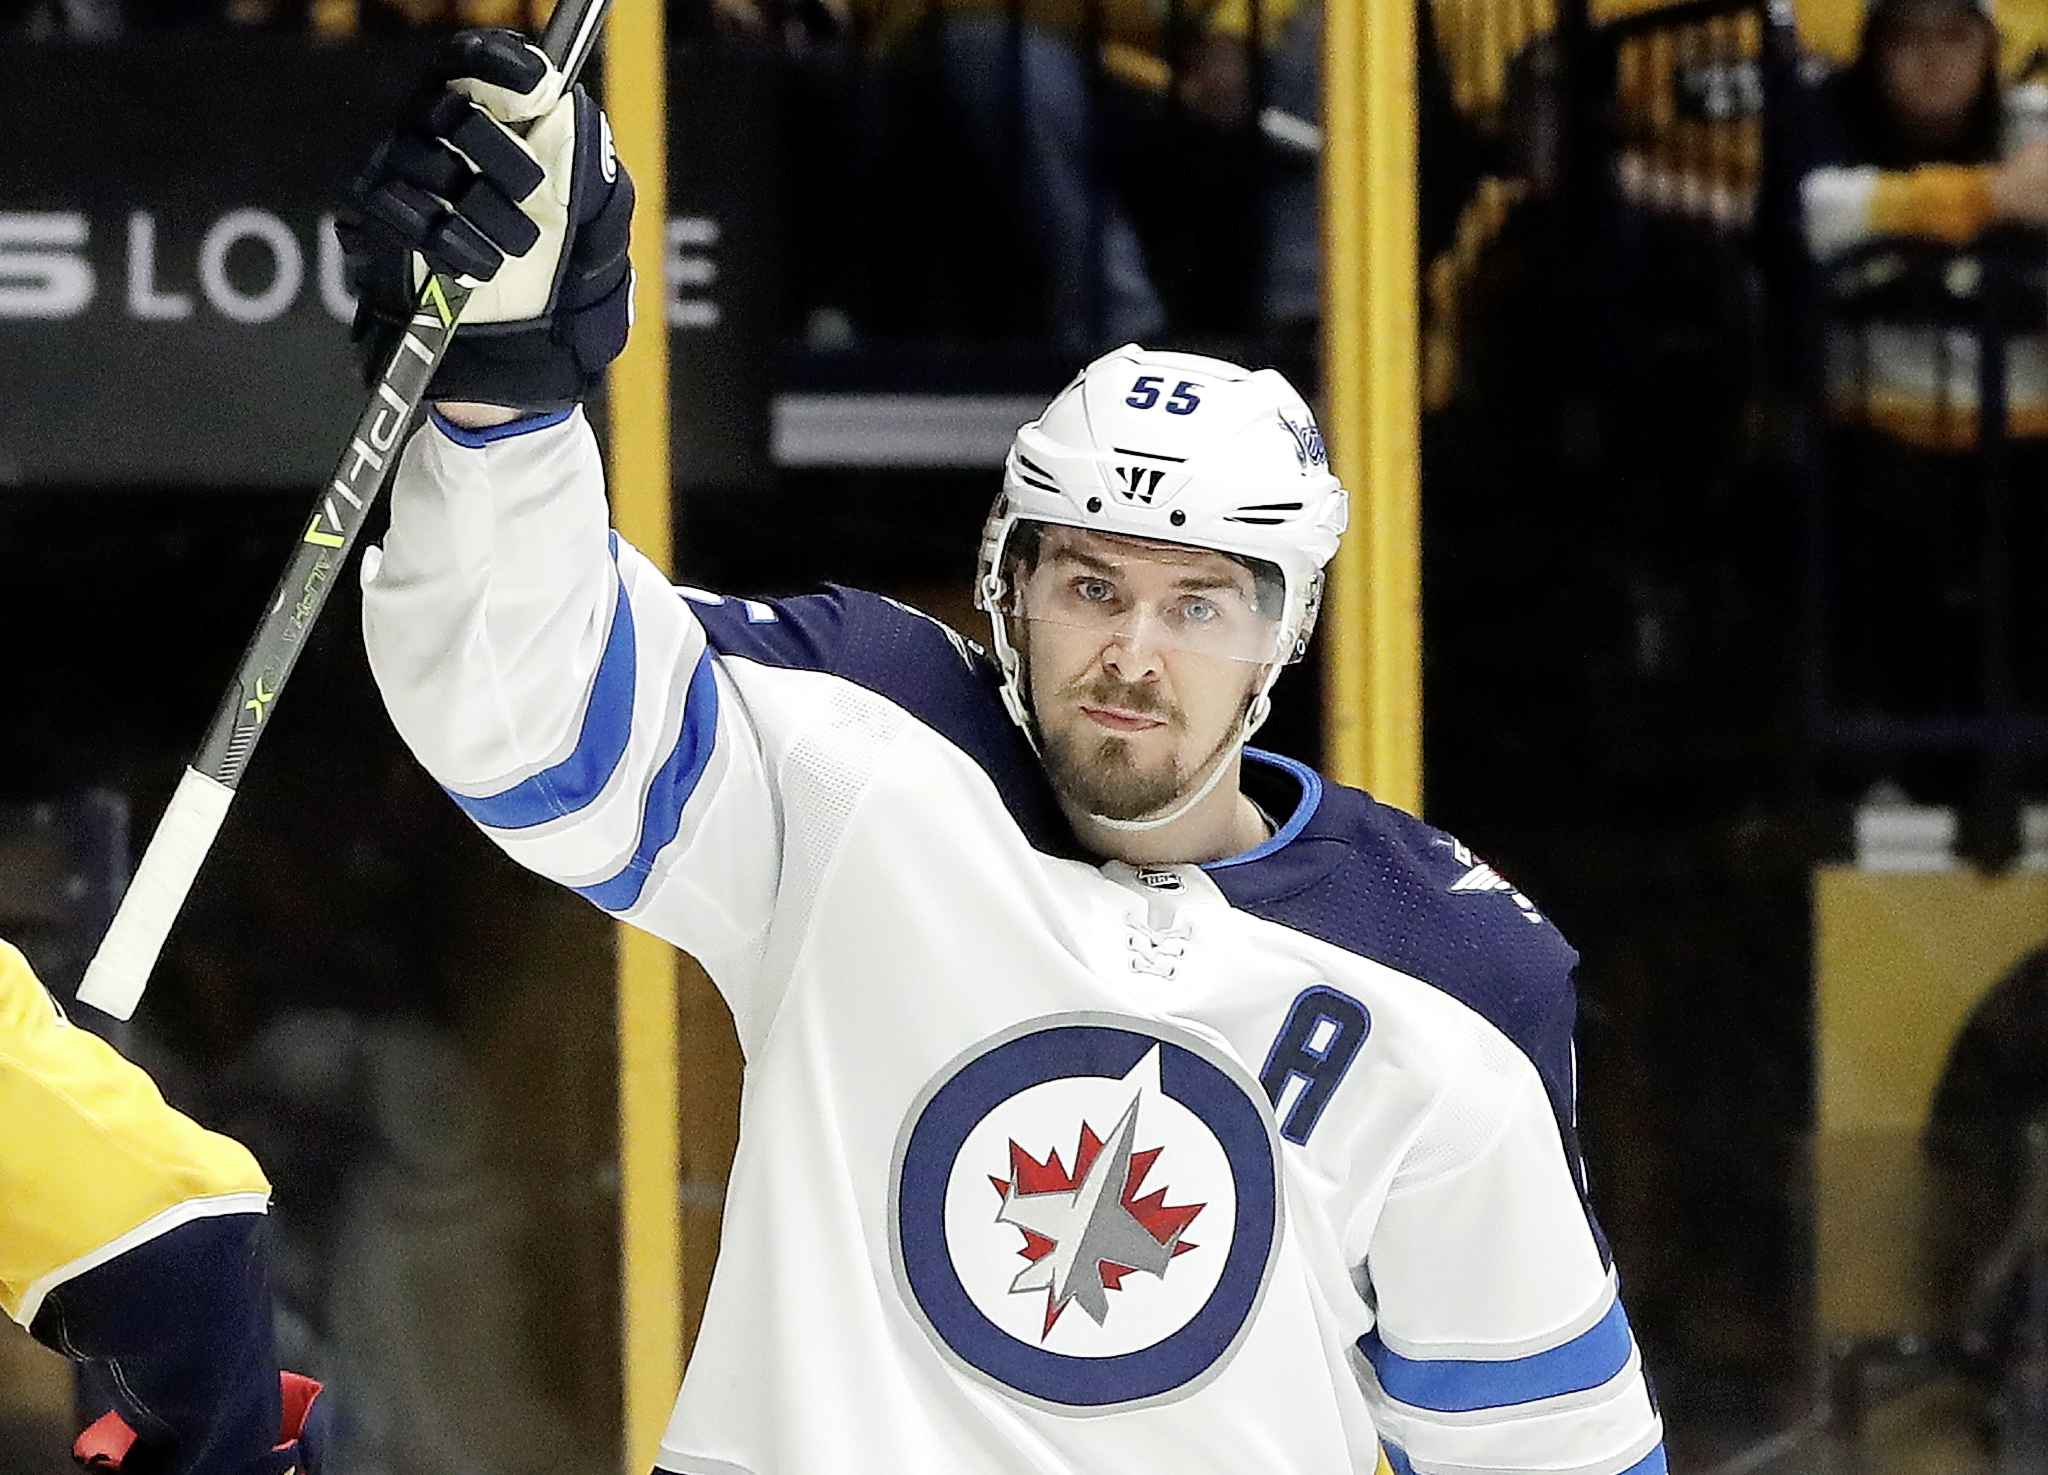 Winnipeg Jets center Mark Scheifele signed a team-friendly long-term deal for US$6M per season. Had he held out for a bridge deal, he'd probably be earning closer to US$9M a year figures Button.